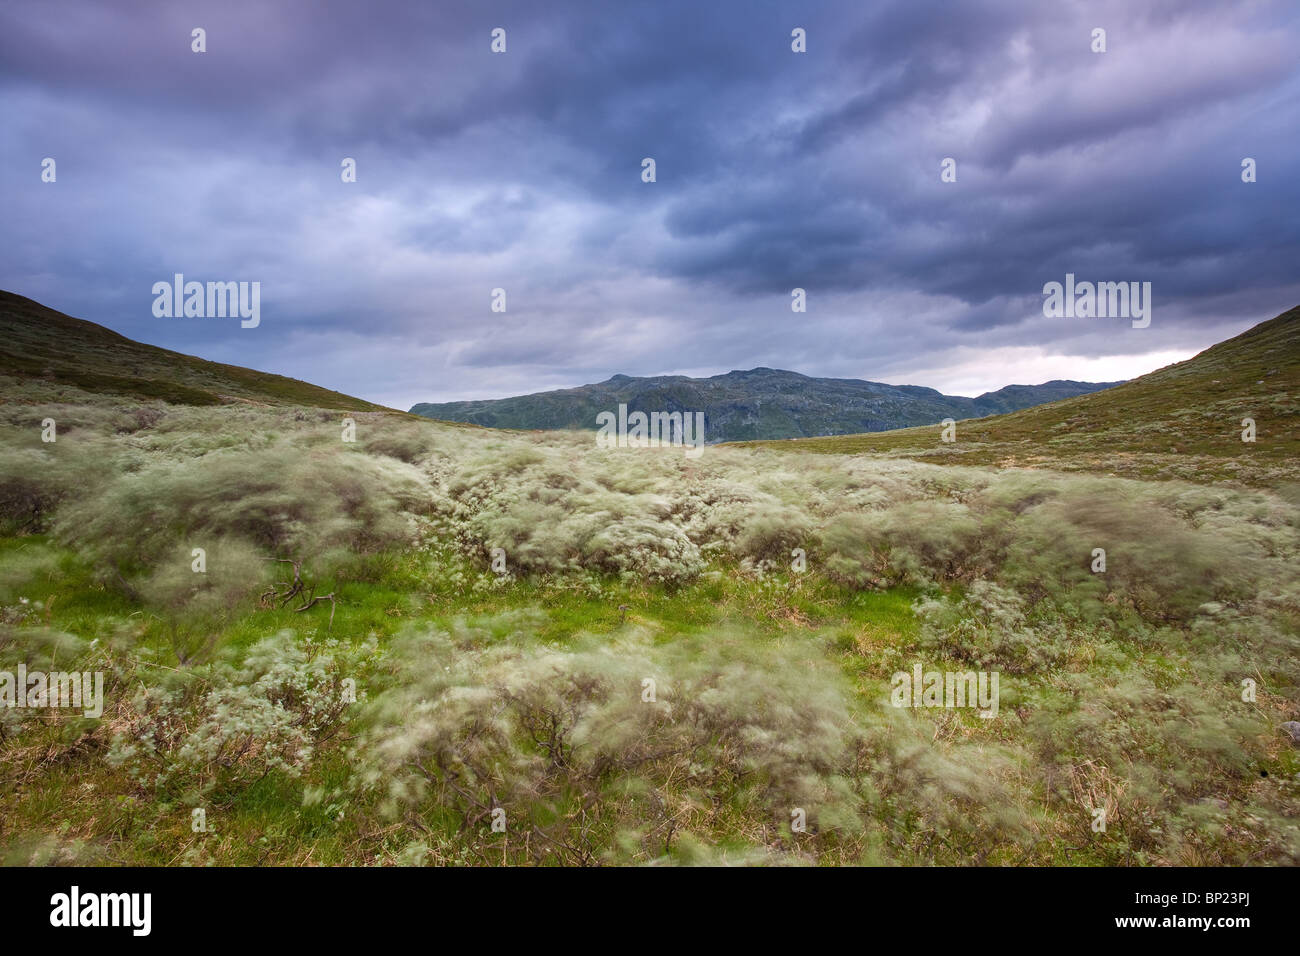 Dramatic clouds and windy conditions in the Ringsdalen valley, Jotunheimen, Norway. - Stock Image